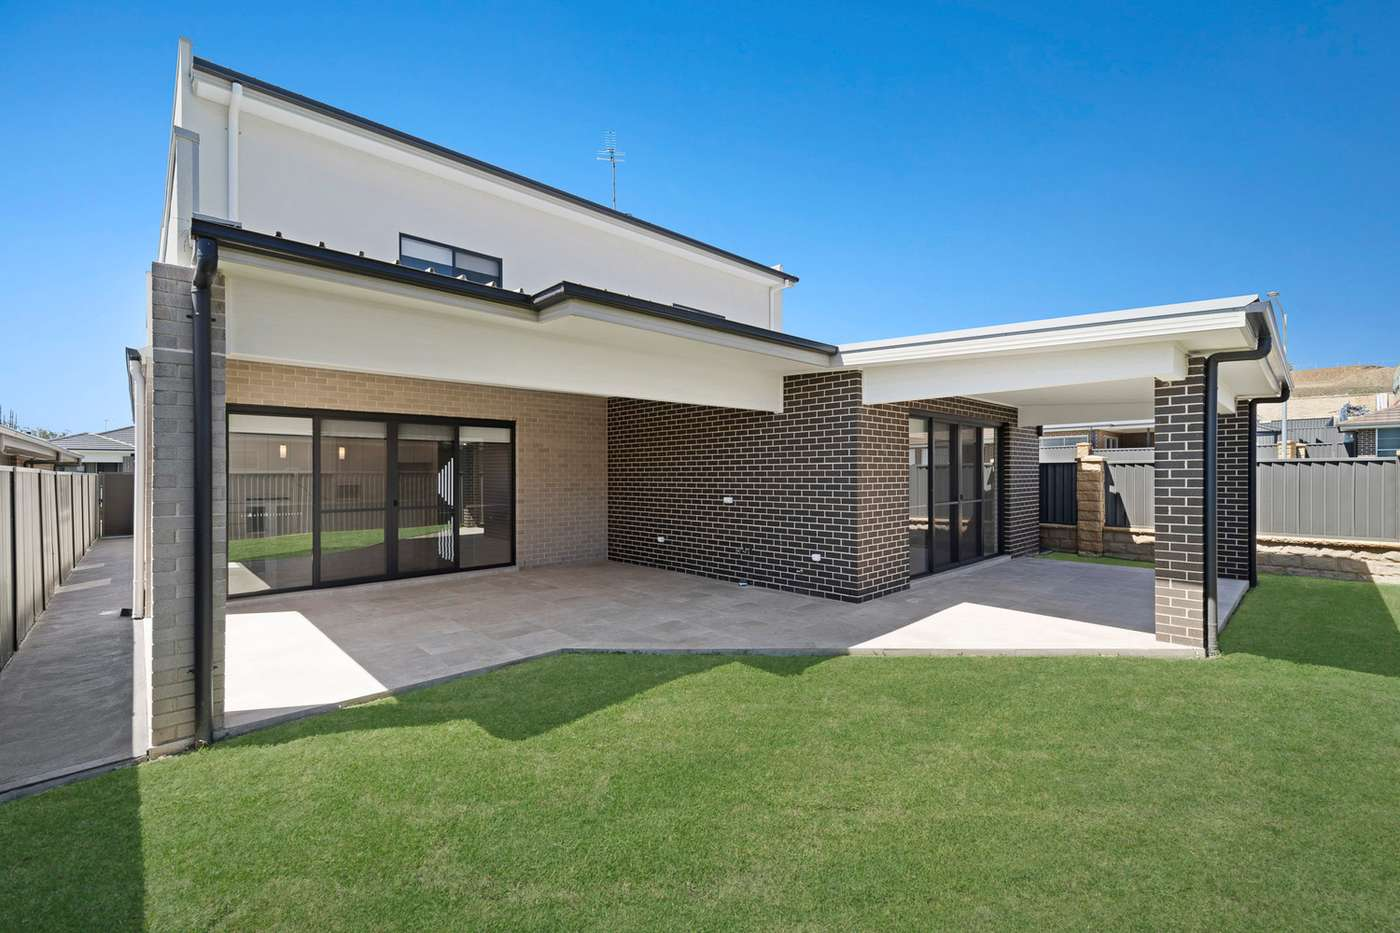 Main view of Homely house listing, 16 Sunstone Way, Leppington, NSW 2179